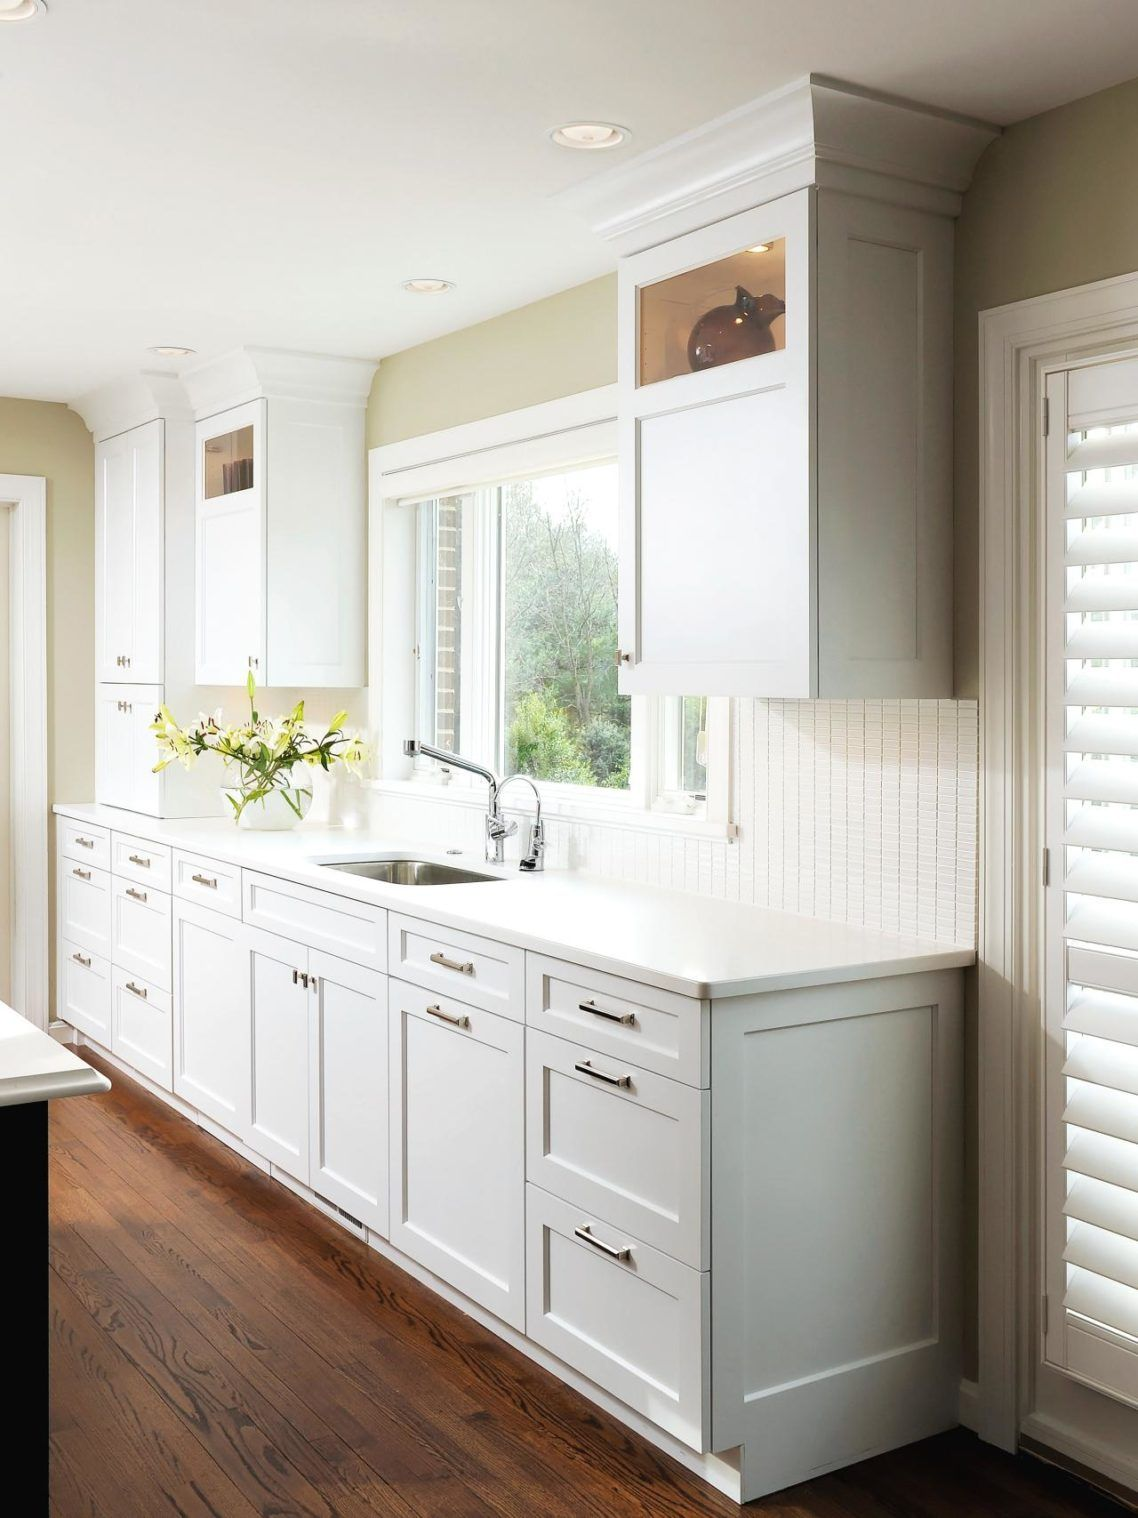 Luxury Design Home Modern Kitchen Ideas With White Wooden Kitchen Cabinets  And Tiered Storage Drawers And